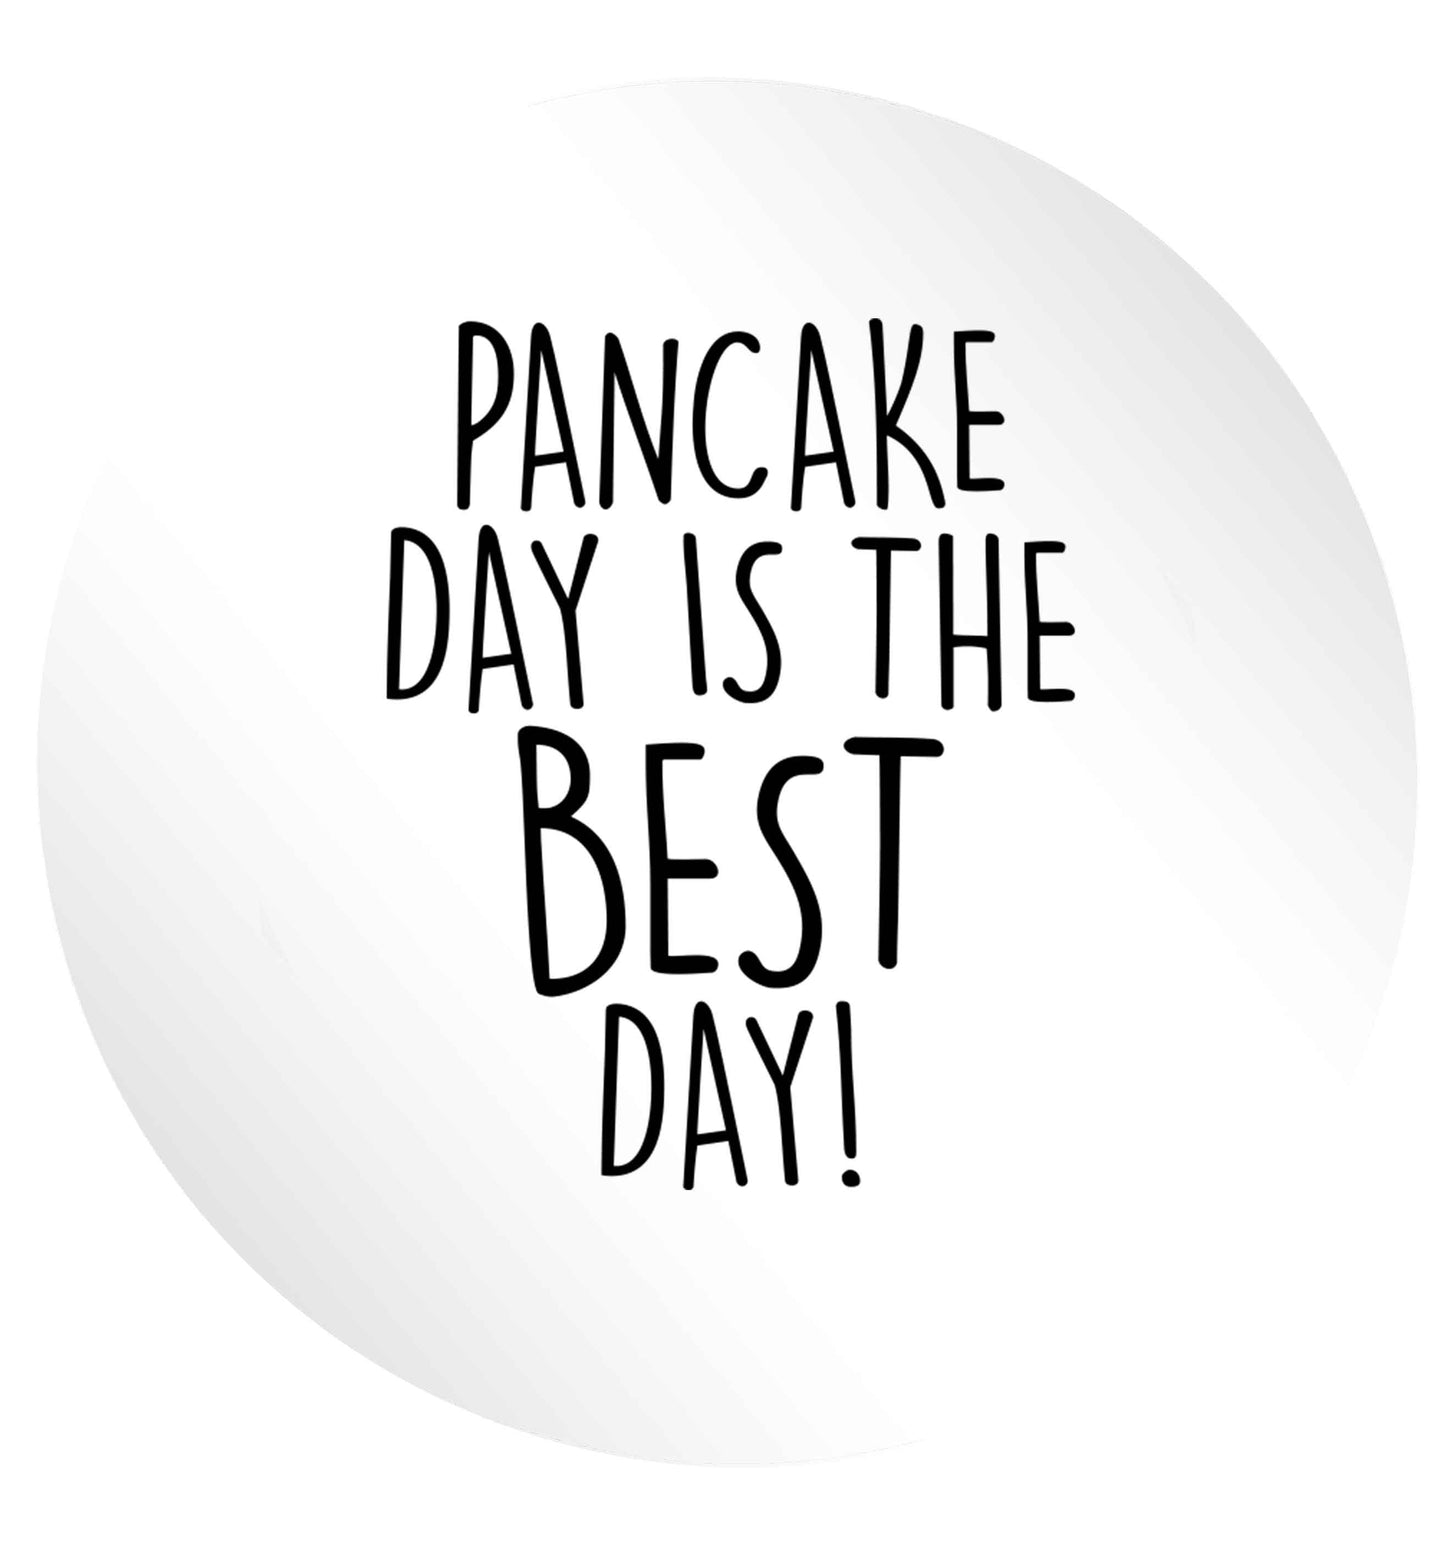 Pancake day is the best day 24 @ 45mm matt circle stickers